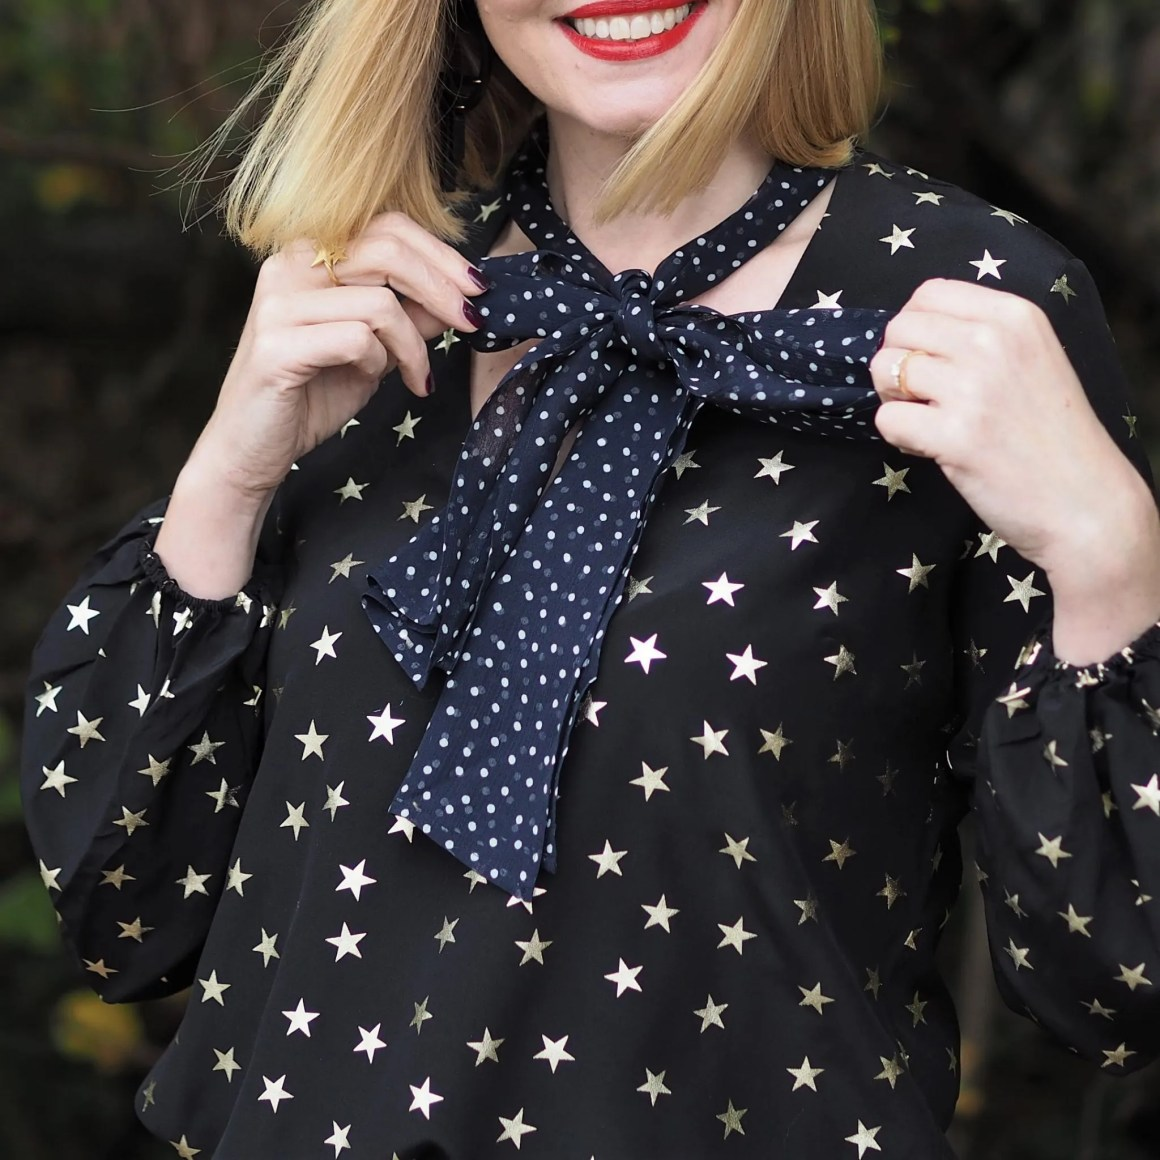 Rixo stars and dot blouse tied in bow